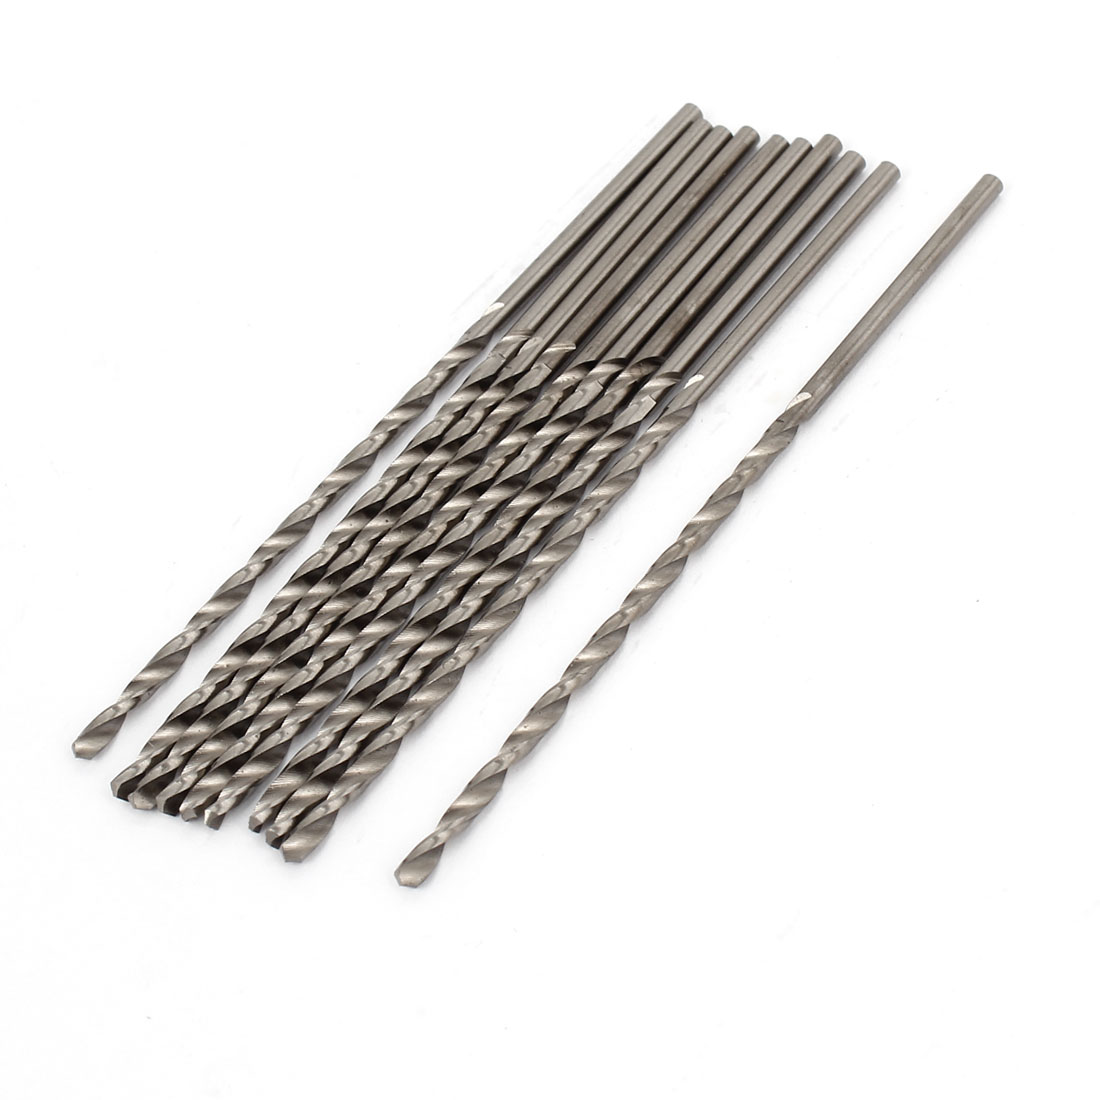 65mm Flute Length 2.2mm Tip HSS Straight Shank Drilling Twist Bit 10pcs